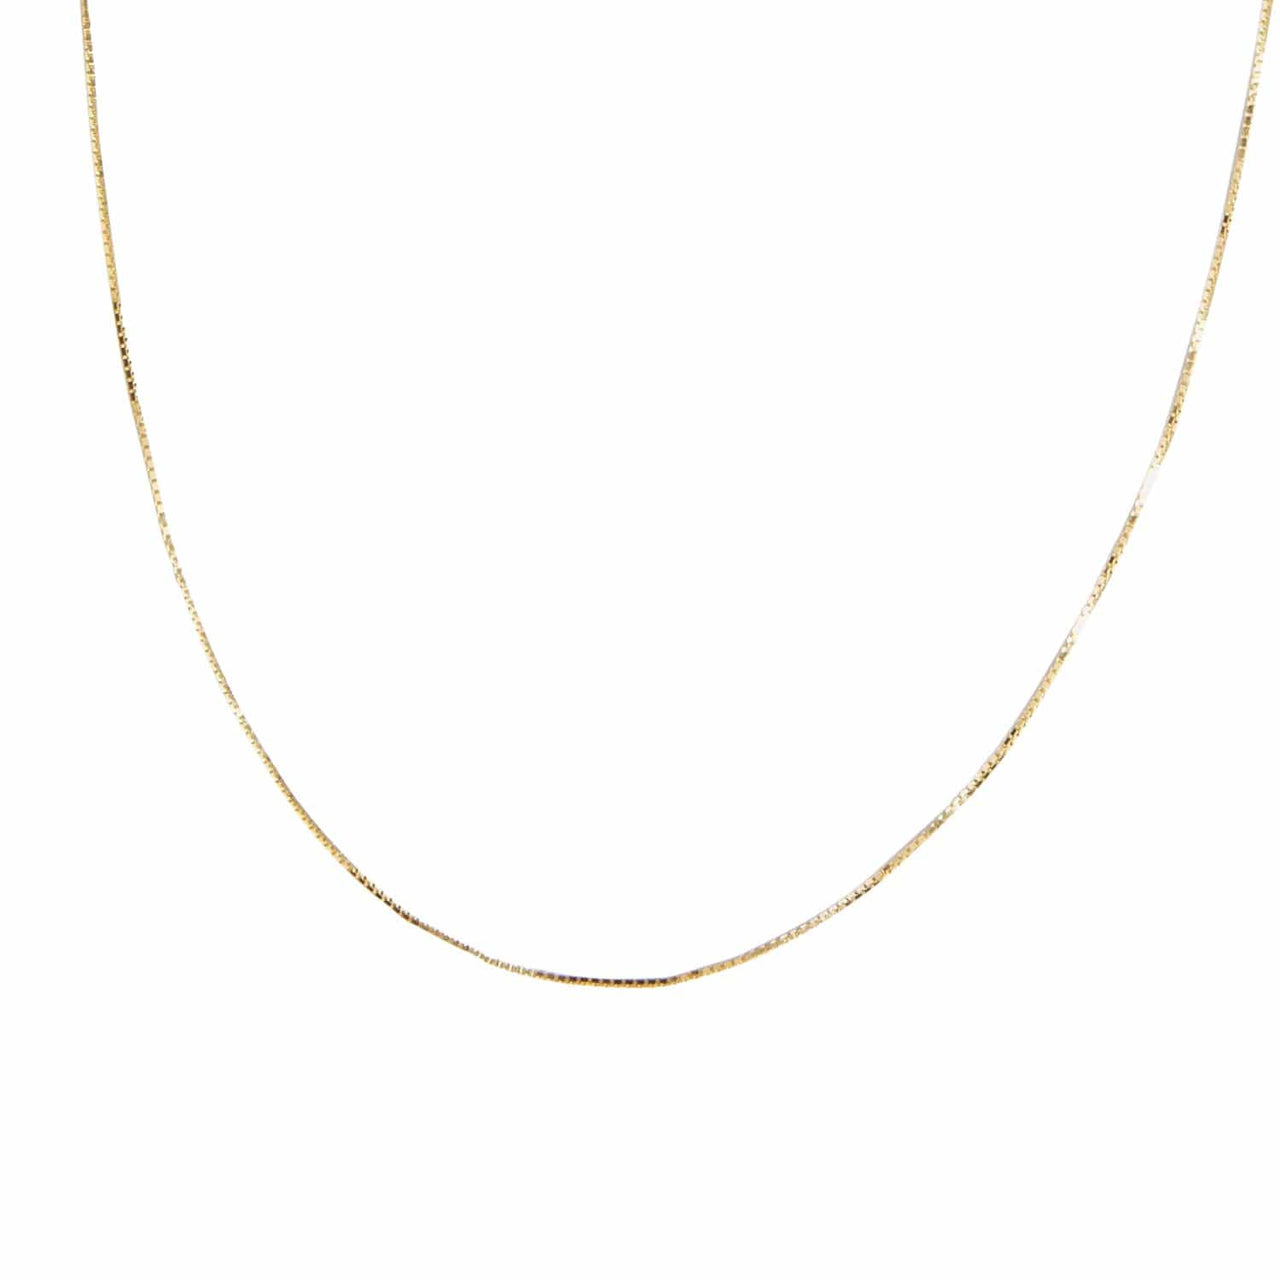 "AMARILO Necklaces 14k yellow gold / 18"" Jules Chain"